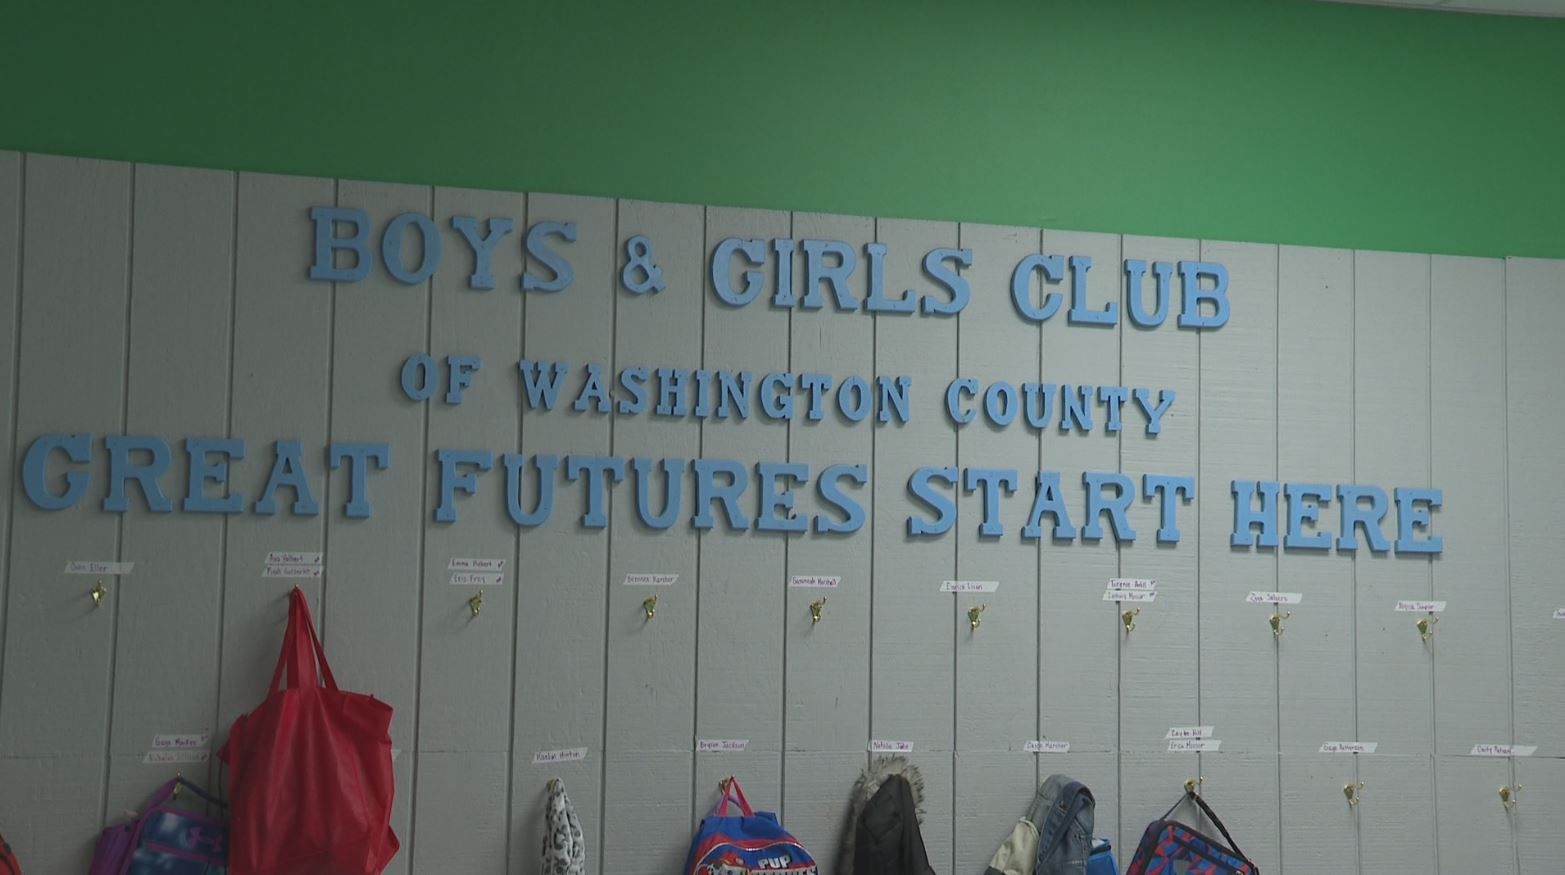 Arc Halloween Dance 2020 Parkersburg Wv Boys and Girls Club of Washington County receives donation